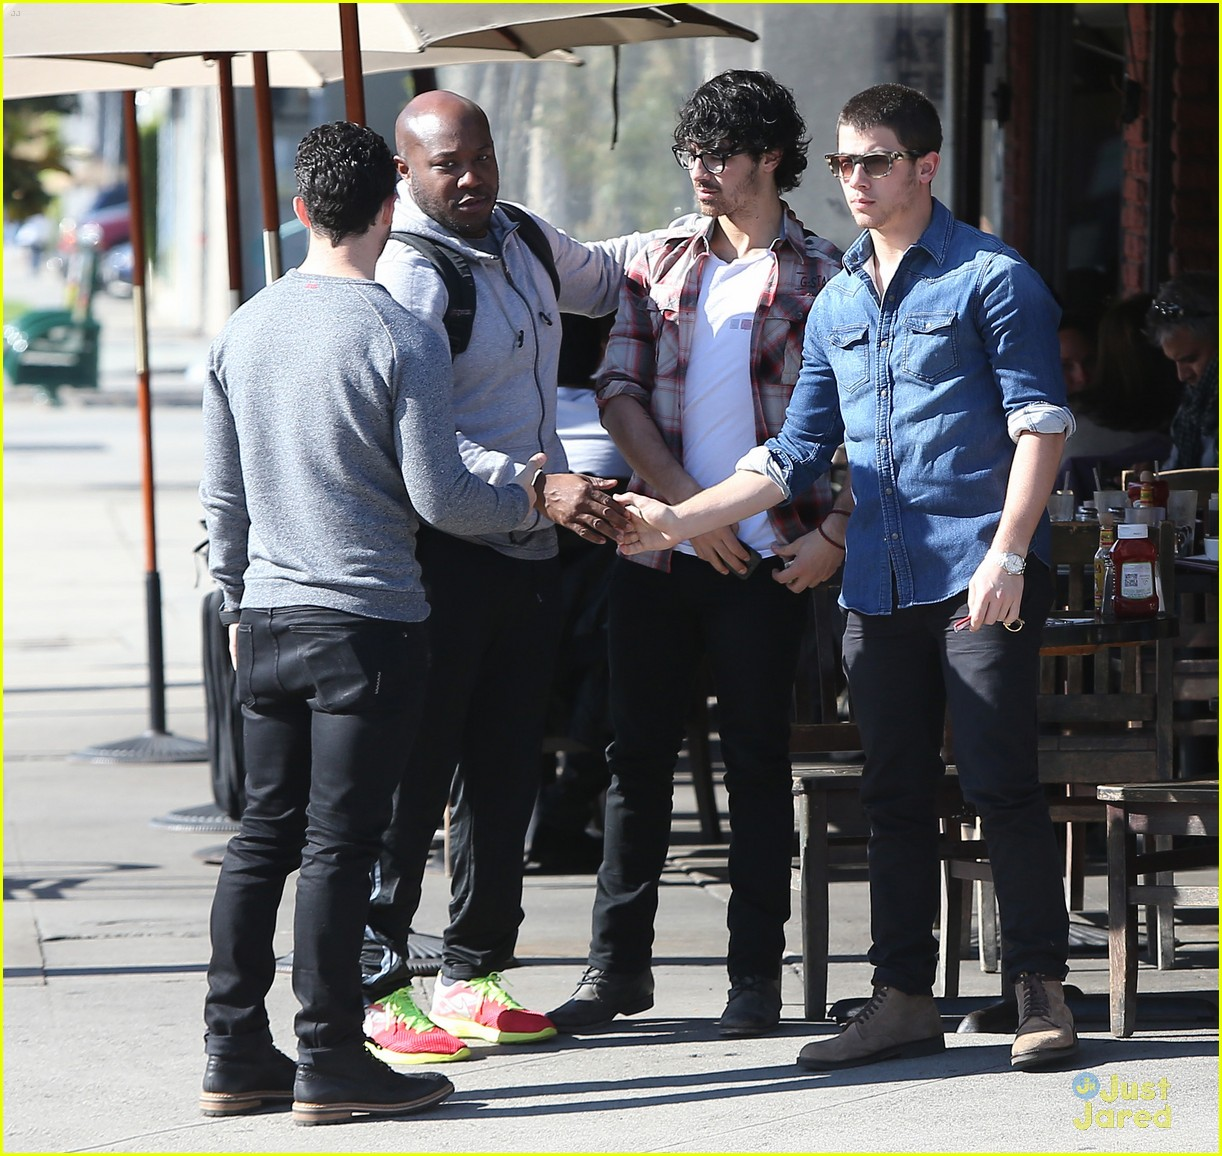 http://cdn03.cdn.justjaredjr.com/wp-content/uploads/pictures/2012/12/jonas-lunch/jonas-brothers-kings-road-lunch-04.jpg